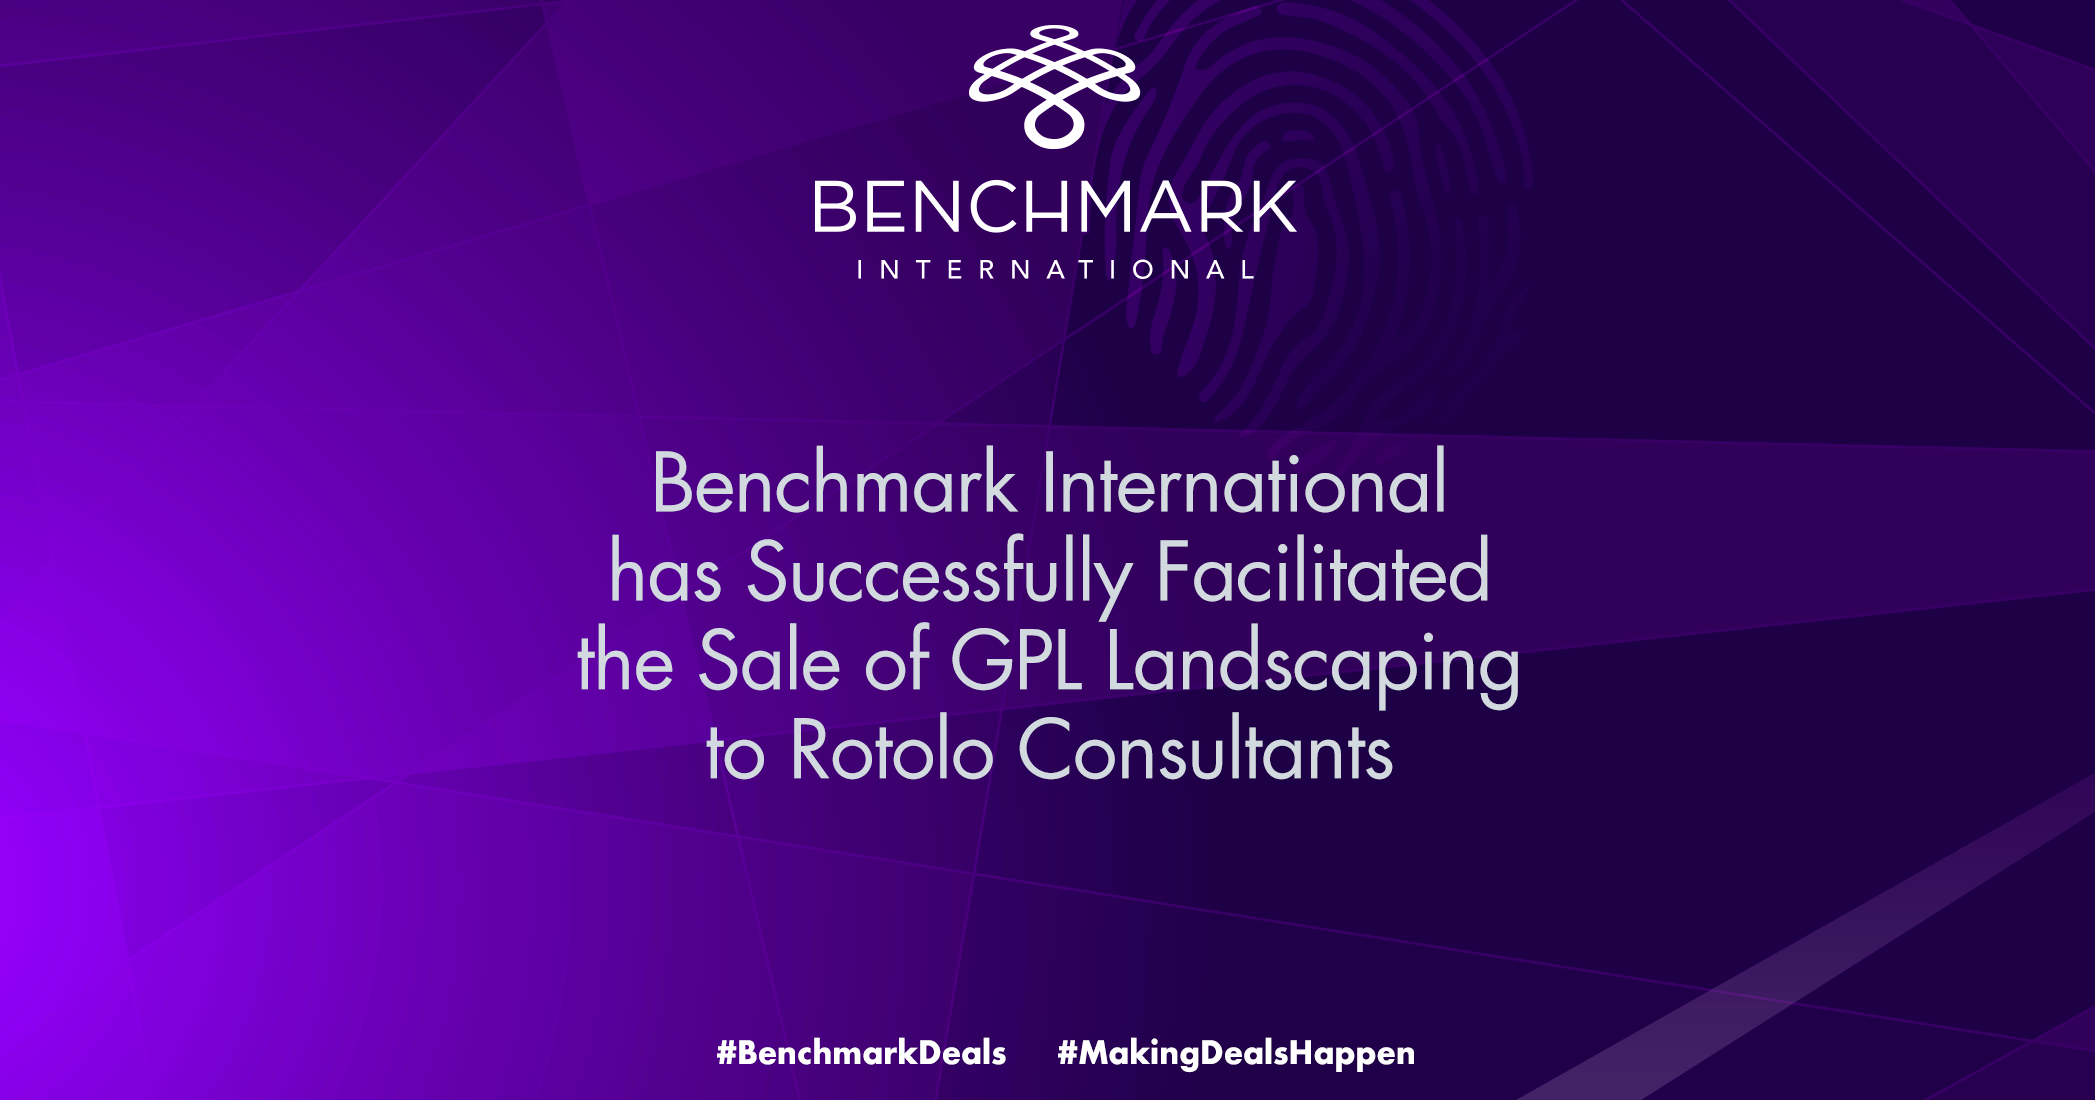 Benchmark International Facilitates the Sale of GPL Landscaping to Rotolo Consultants